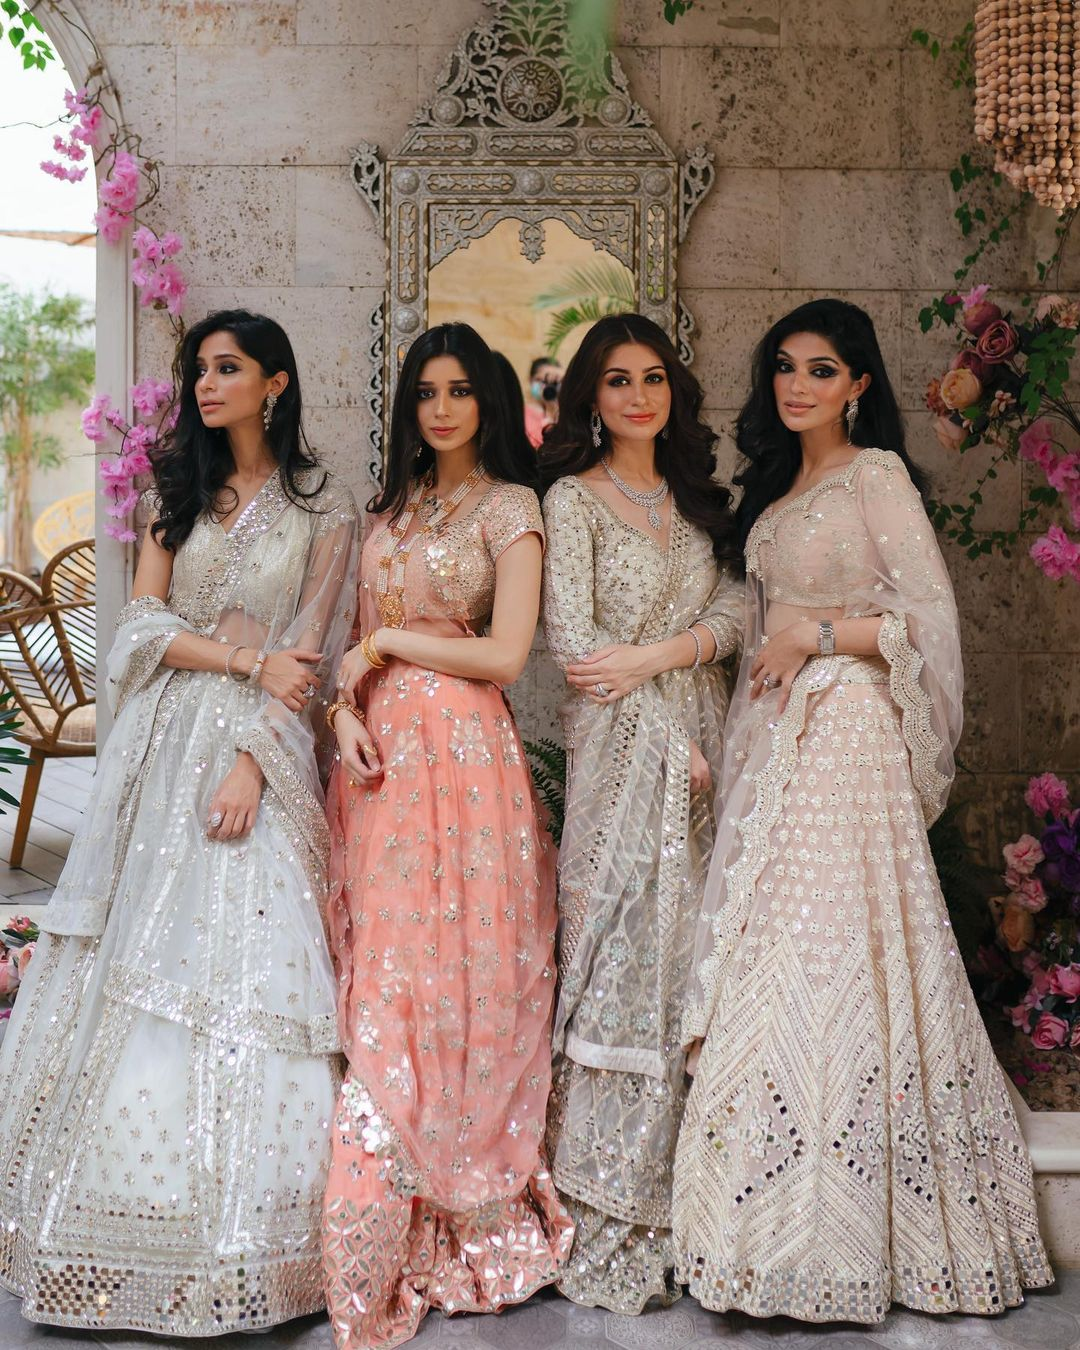 Jashn-E-Bahaar  Starry eyed bridesmaids in a floral garden right out of paradise a courtyard of a thousand cascading florals and all things everlasting love. The beautiful Sufi sisters dressed in Abhinav Mishra couture celebrating togetherness and sisterhood <3 2021-06-02